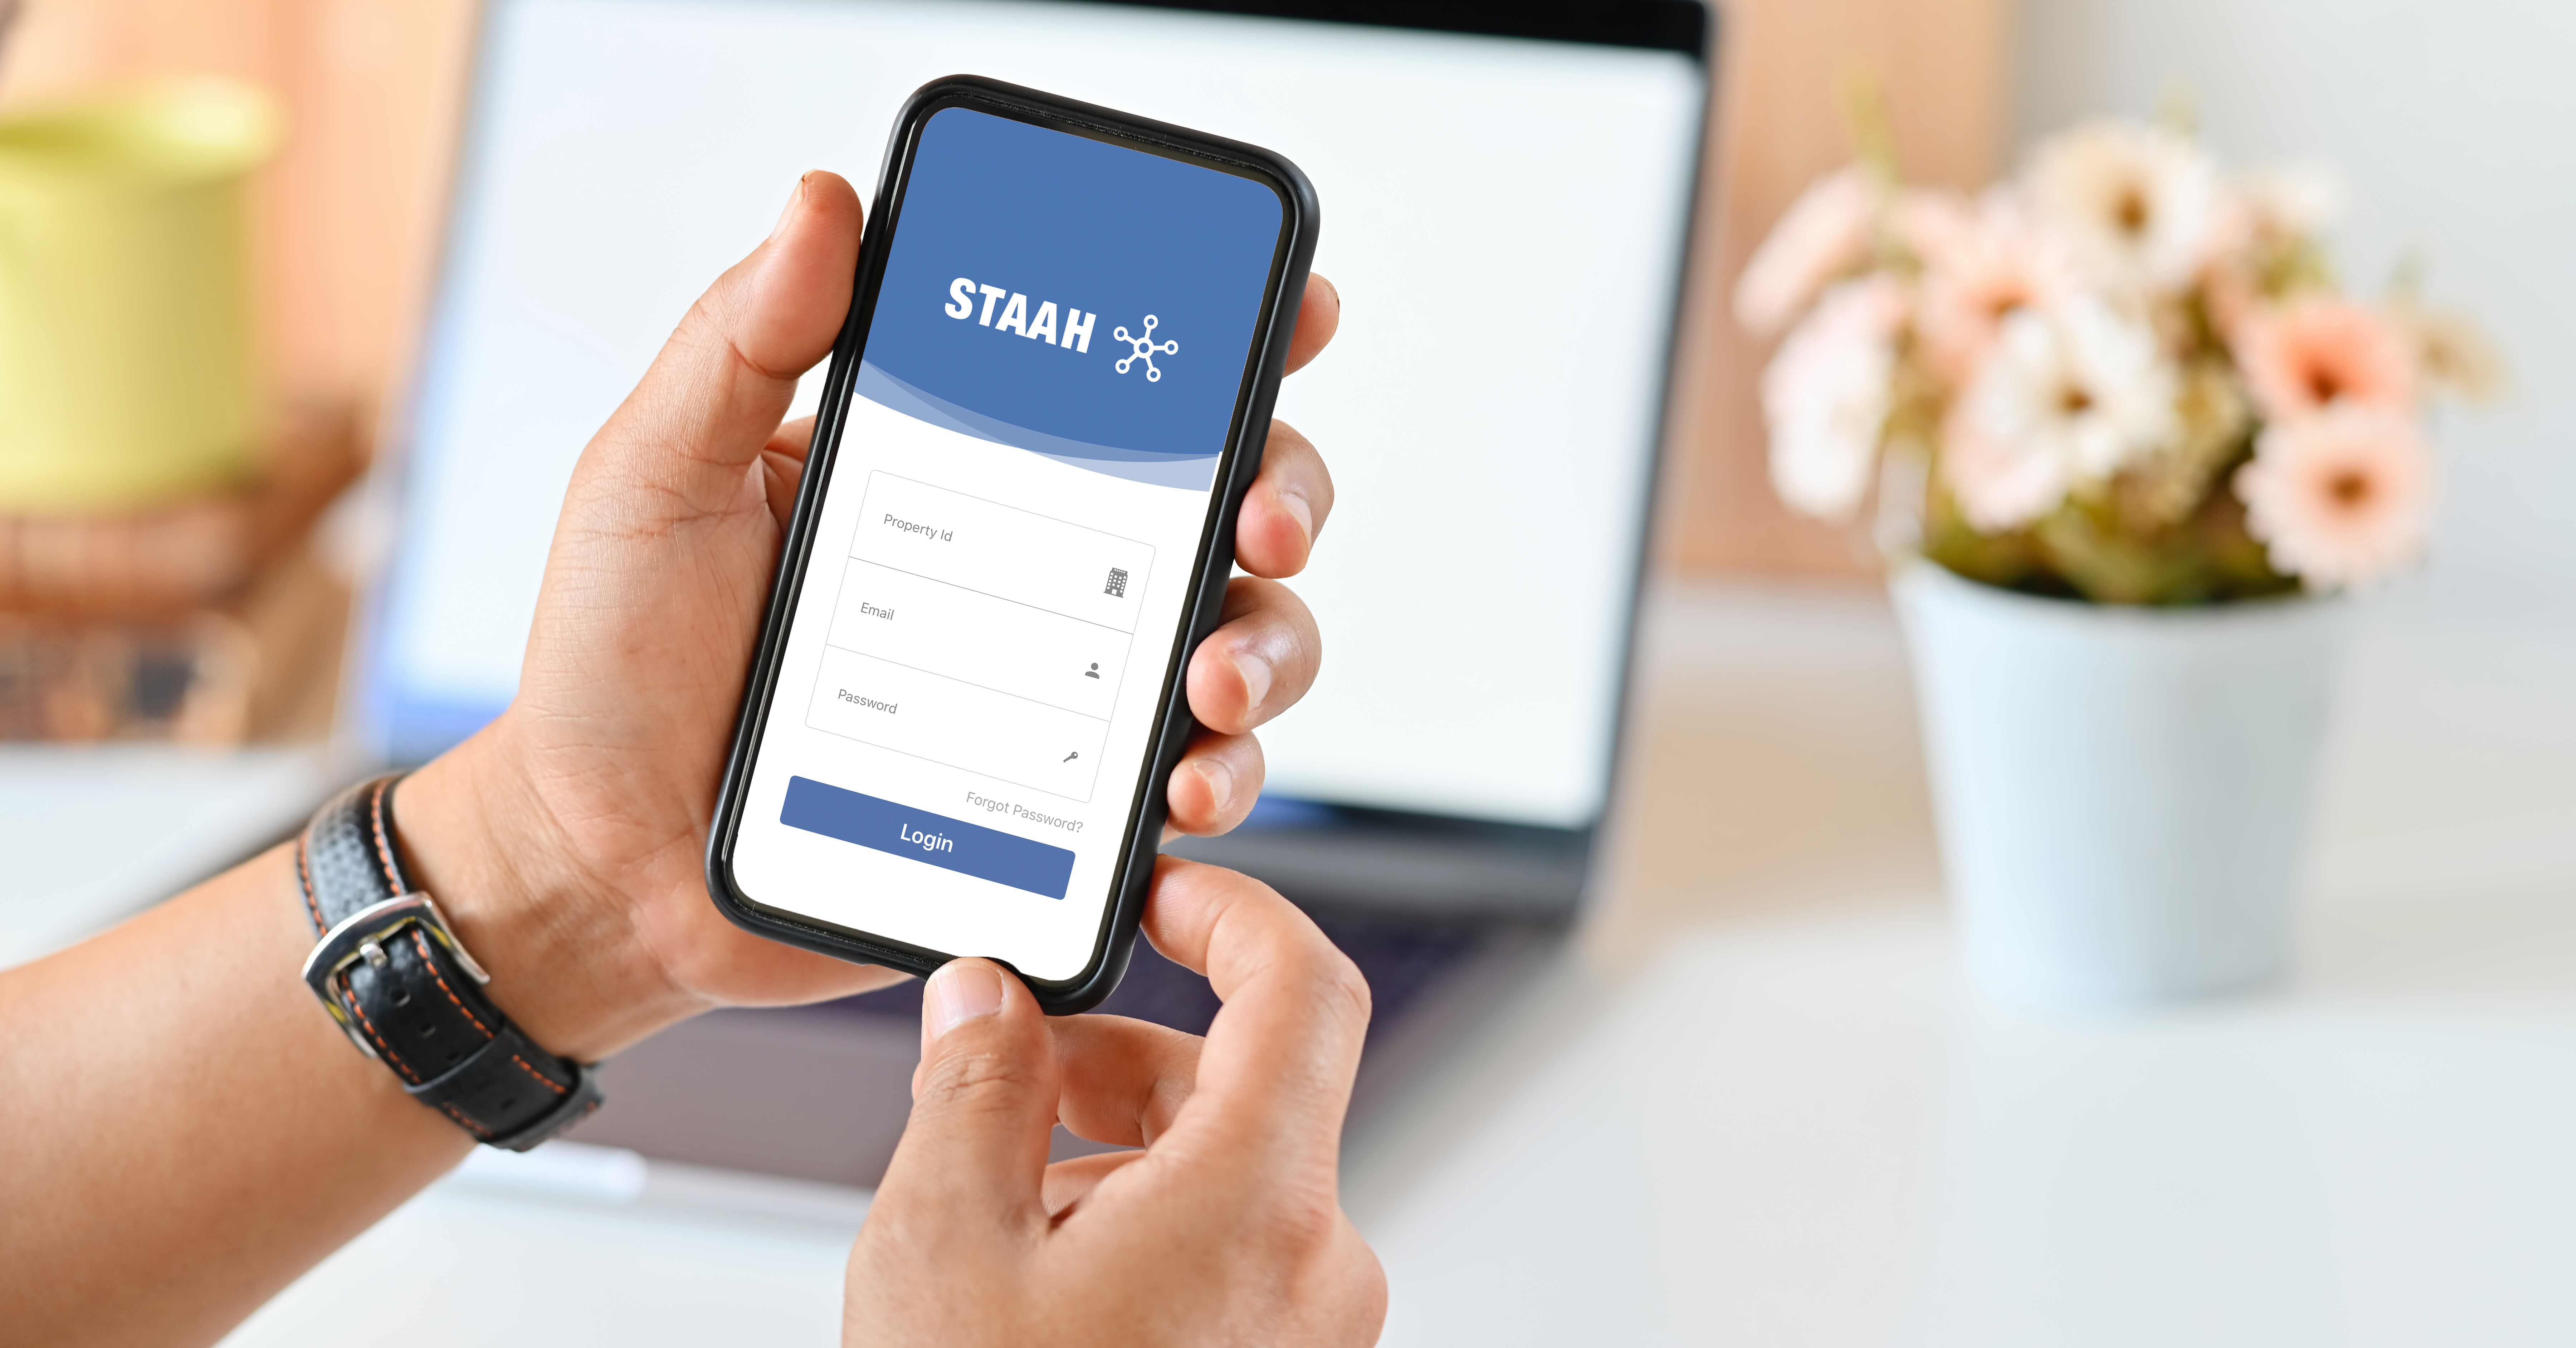 STAAH Max Mobile App